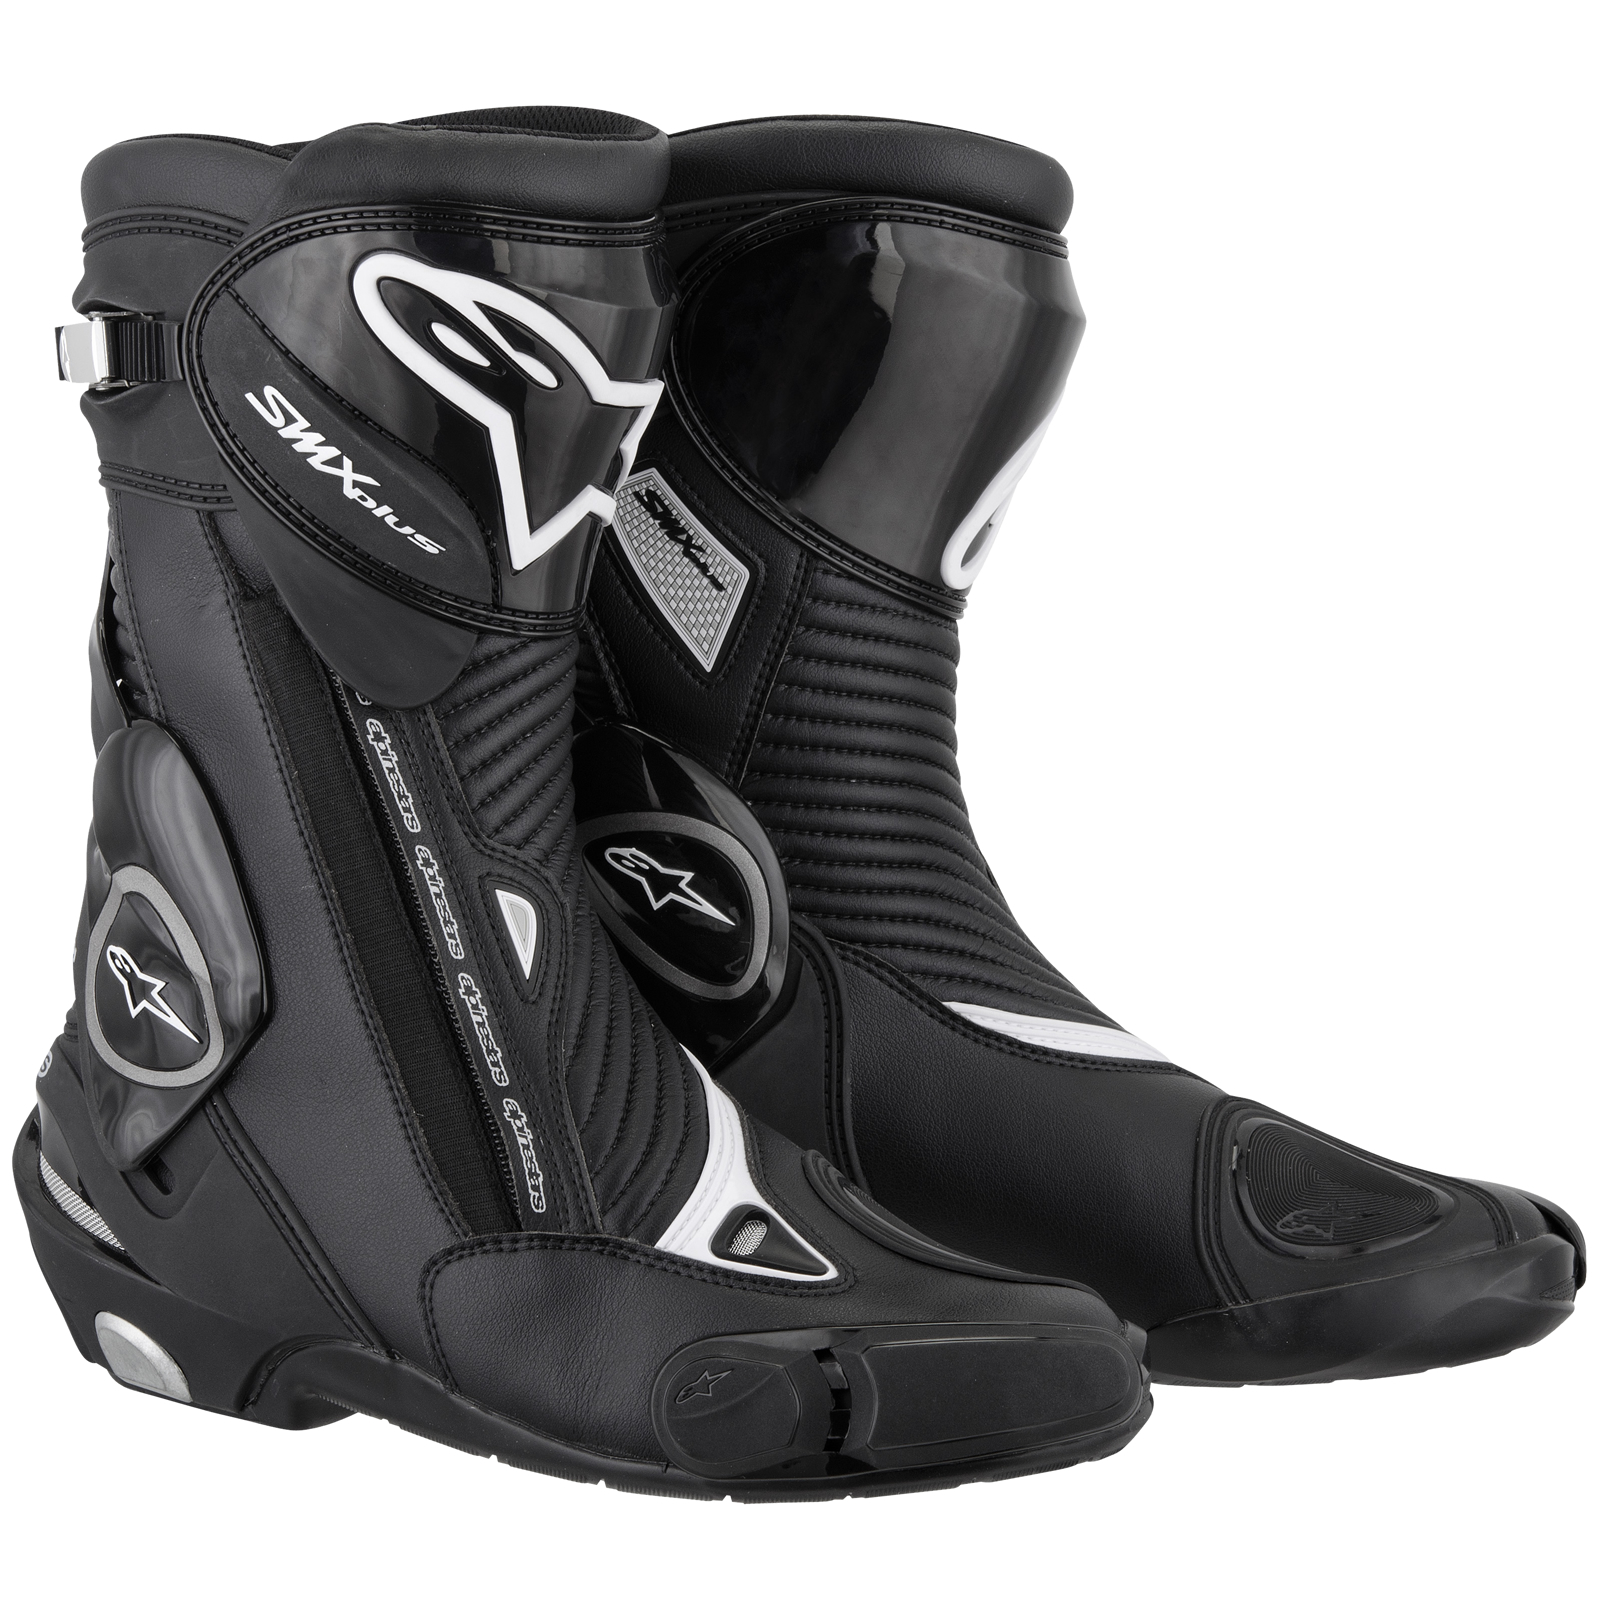 Alpinestars Smx S Mx Plus 2013 Motorcycle Racing Motorbike